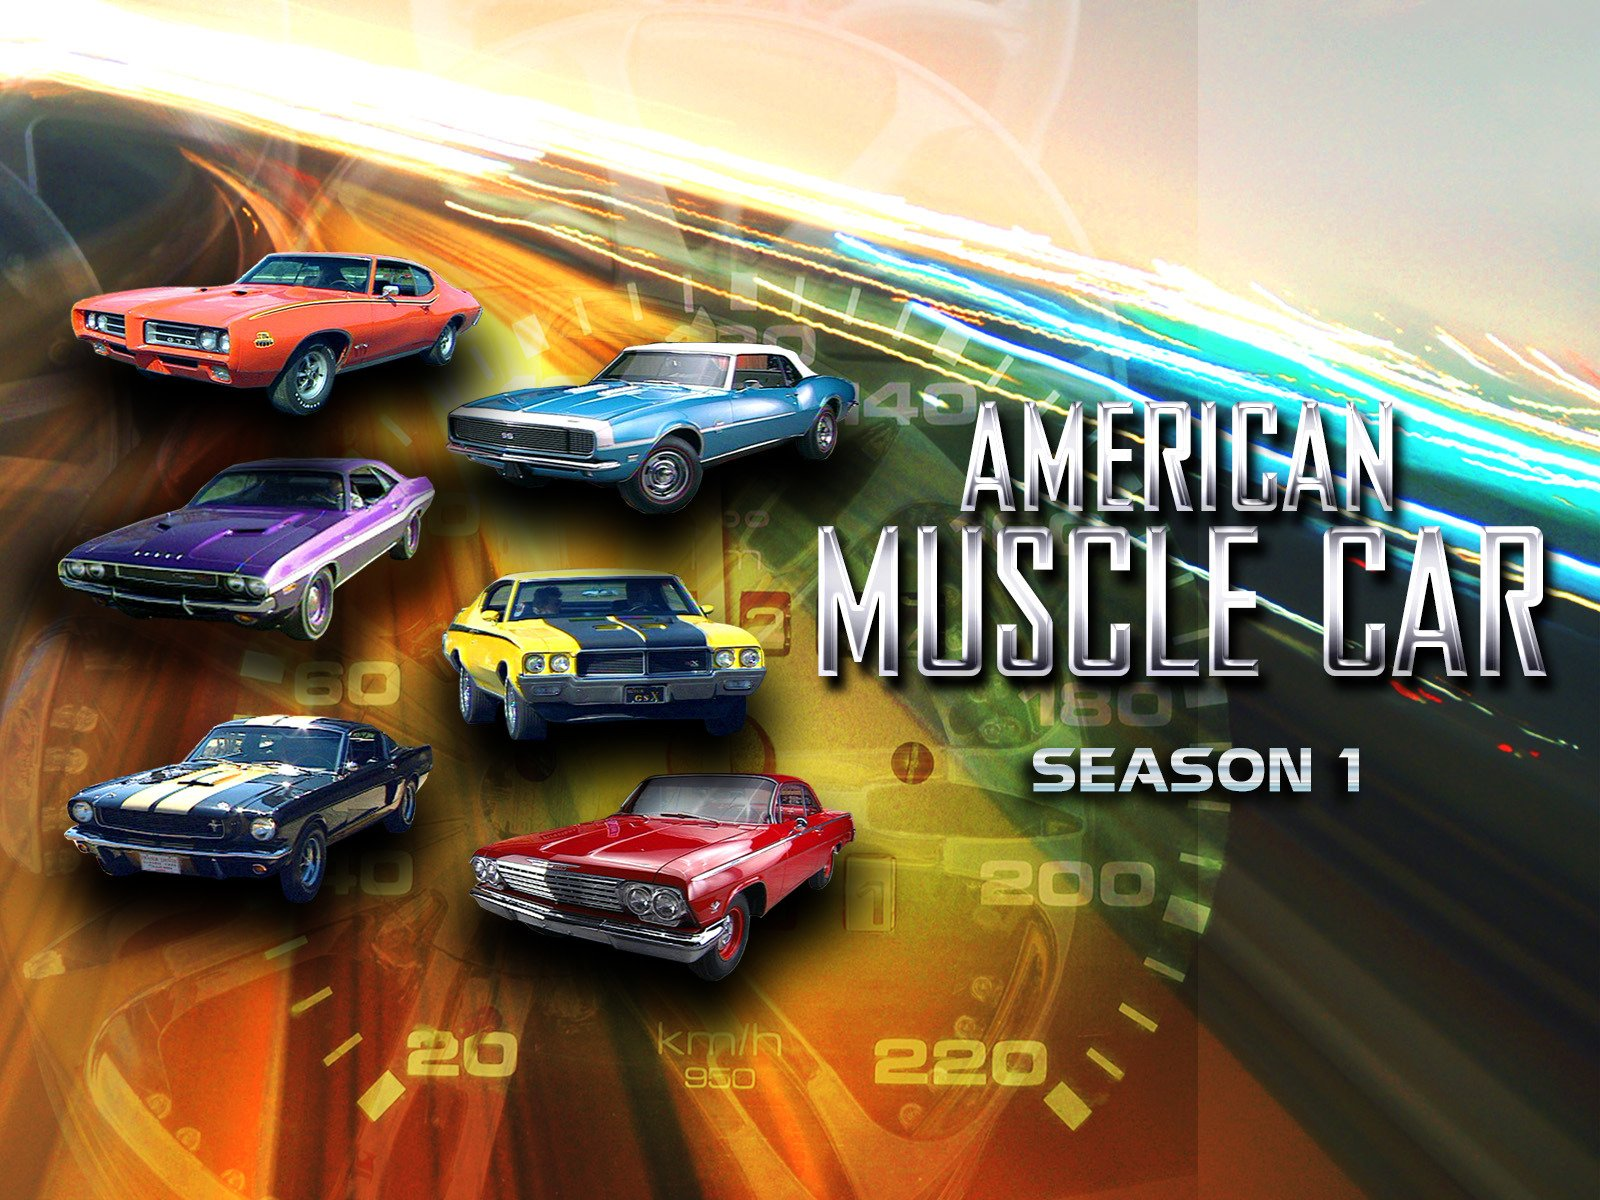 American Muscle Car - Season 1